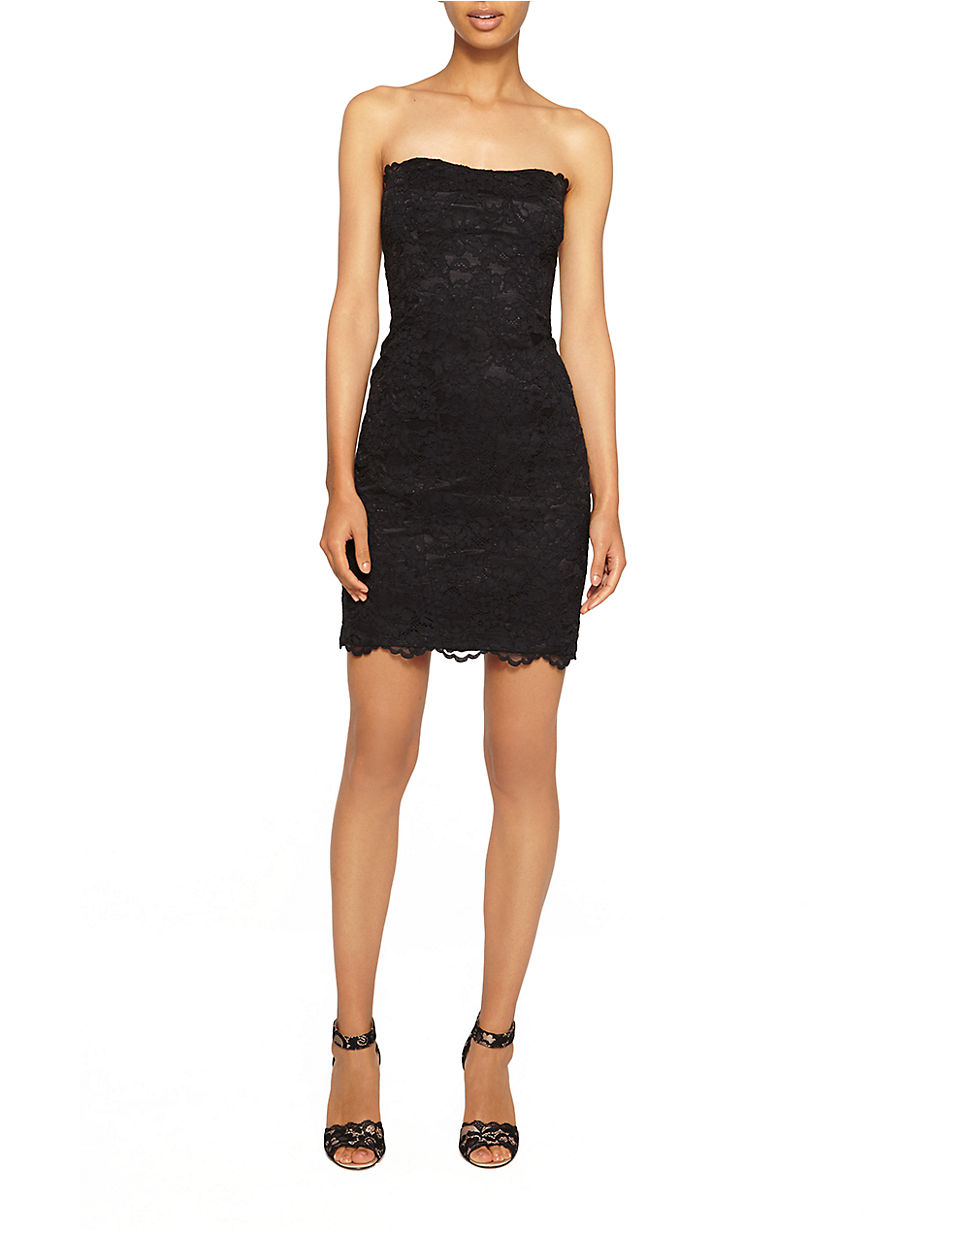 Lyst  Nicole Miller Lace Bodycon Sheath Dress in Black